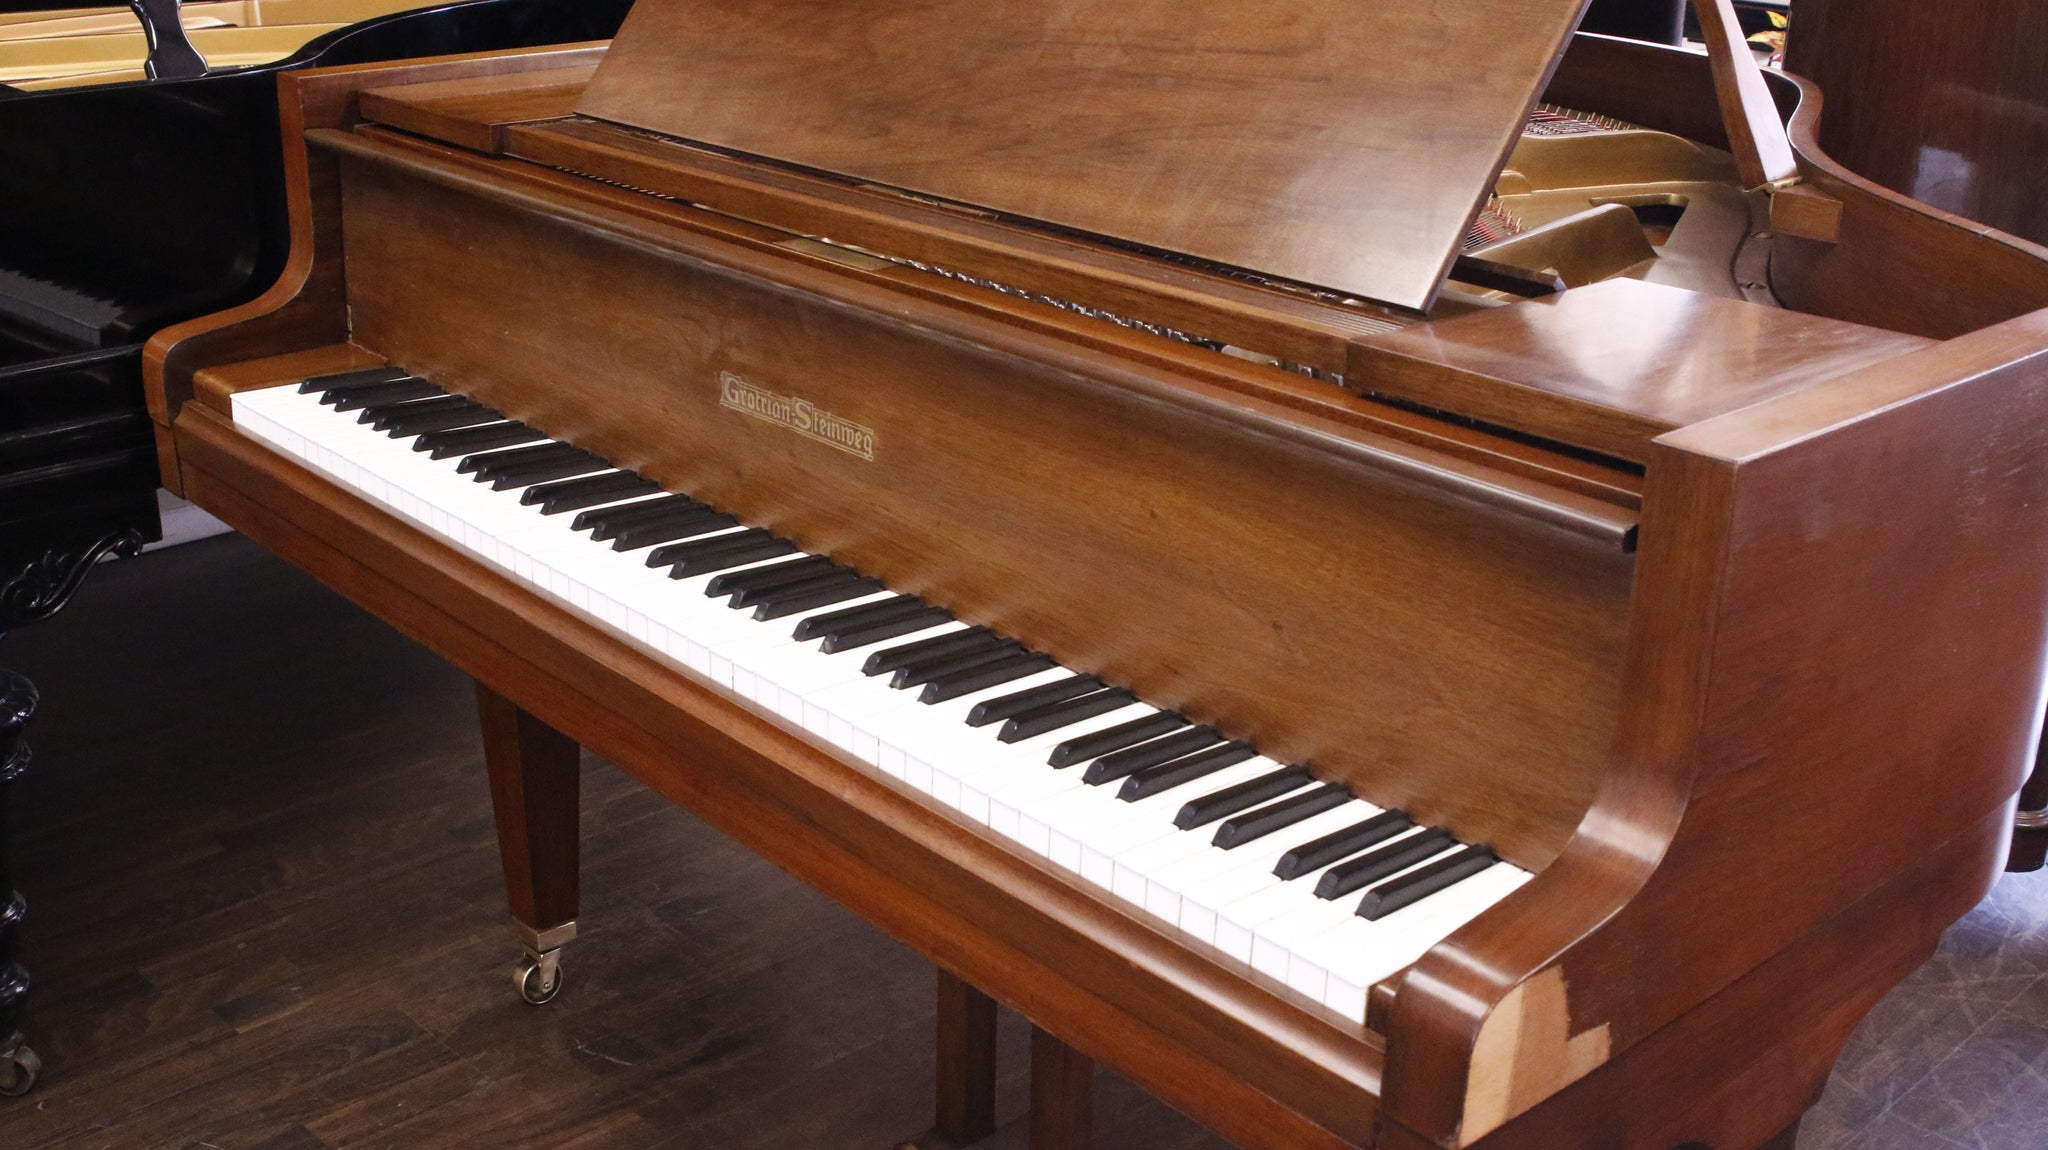 Pre-Owned Grotrian Steinmeg 140 Grand Piano